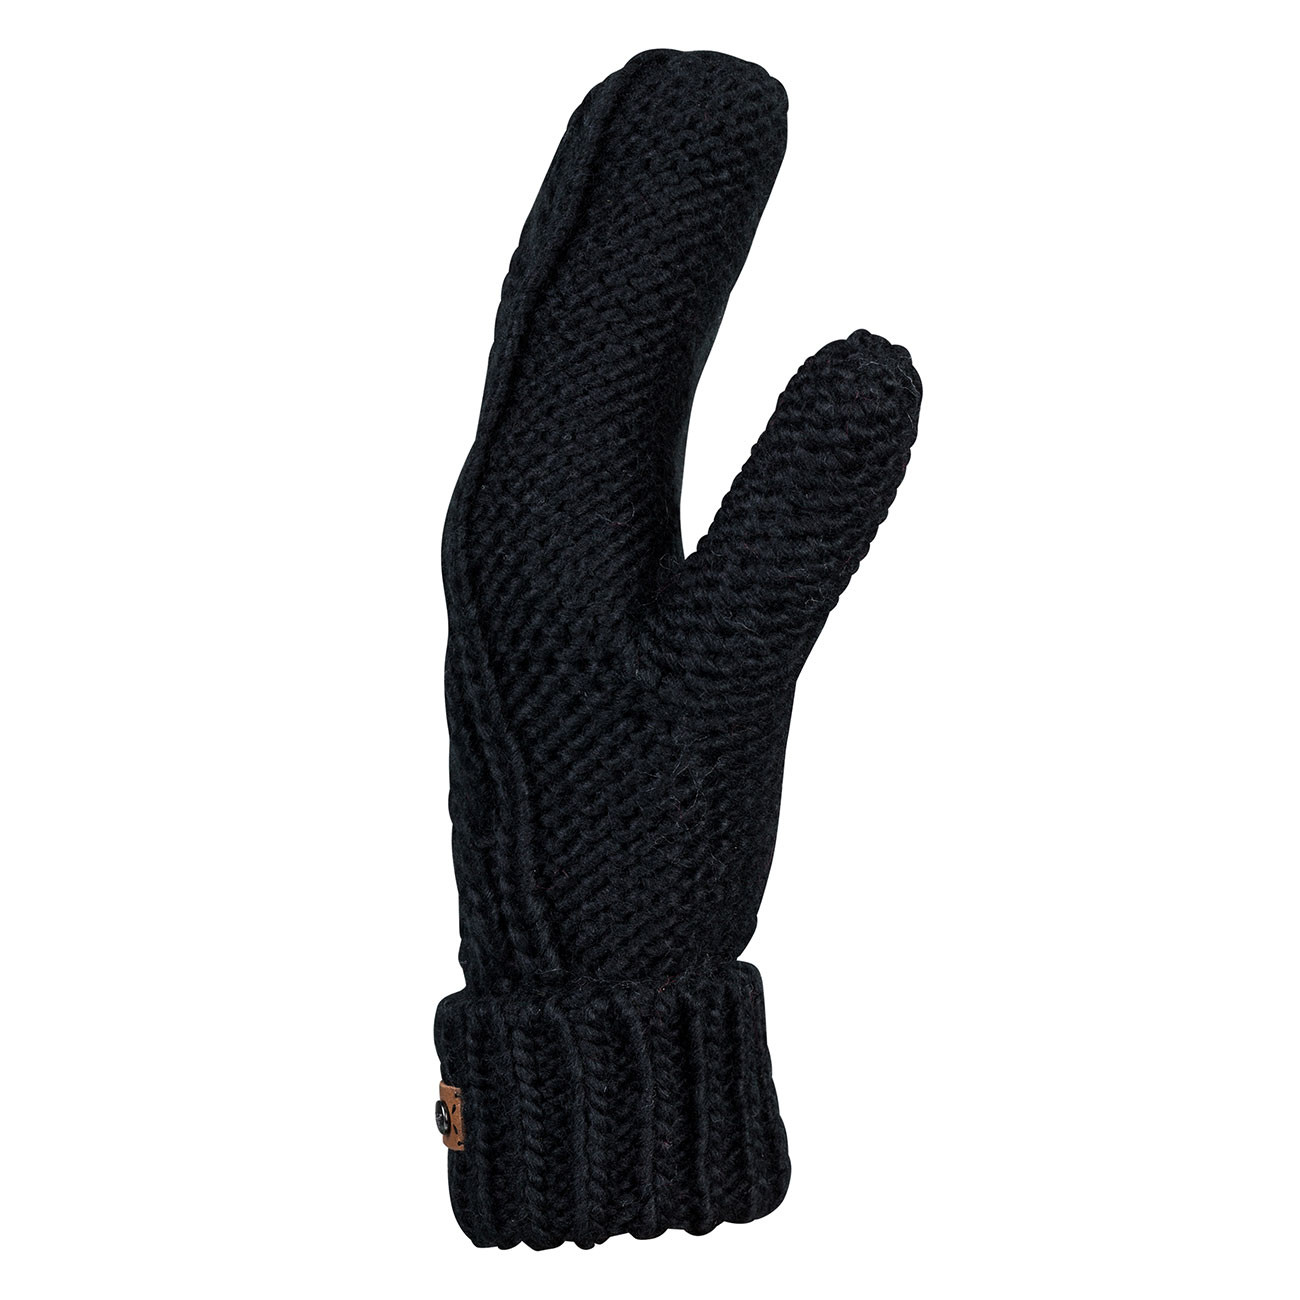 47344c86e60 Městské rukavice Roxy Winter Mittens true black